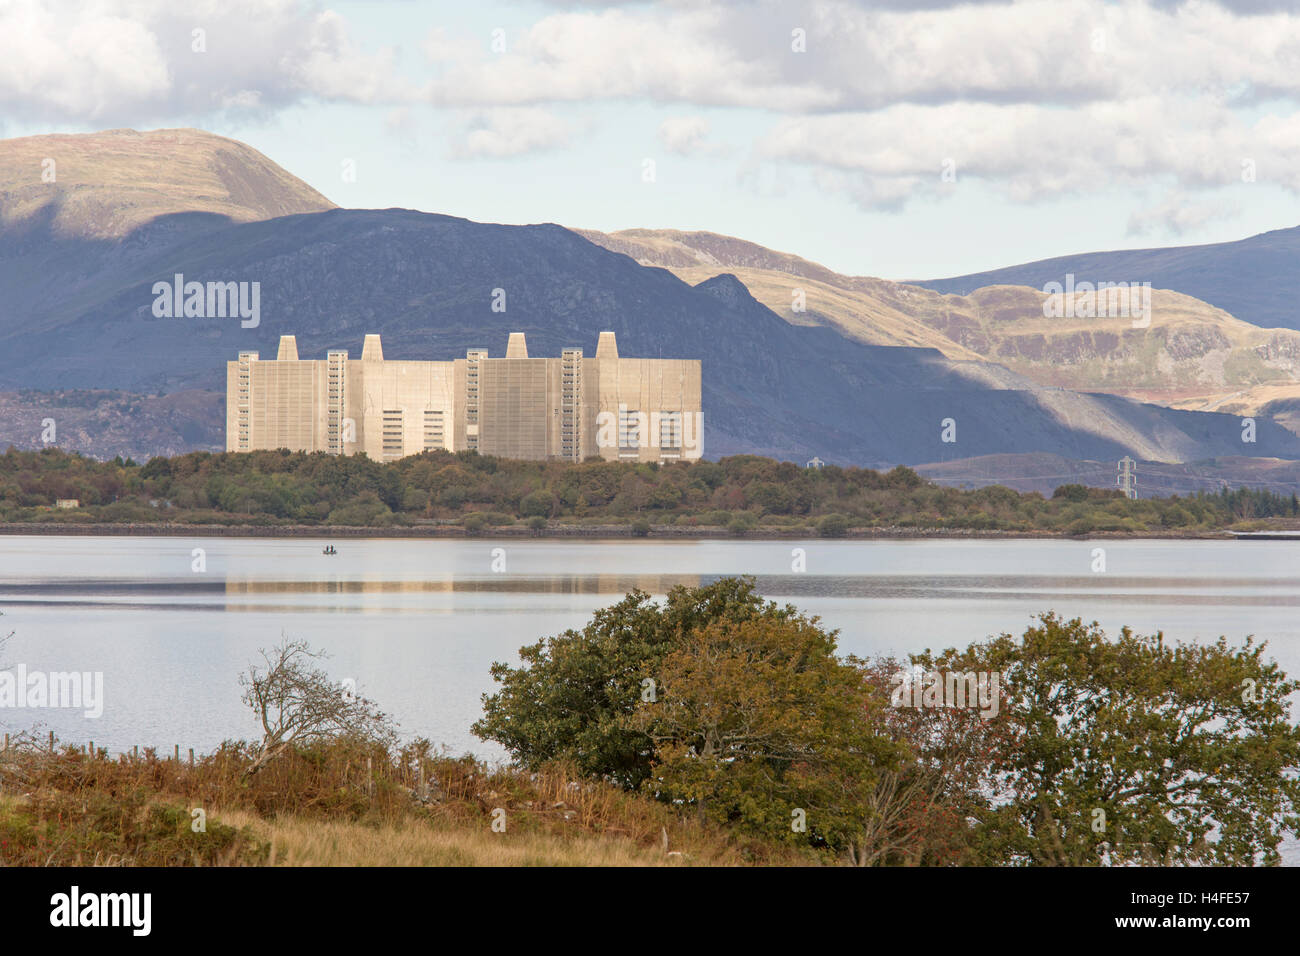 The decommissioned Trawsfynydd Nuclear Power Station, Snowdonia National Park,  Gwynedd, Wales. - Stock Image